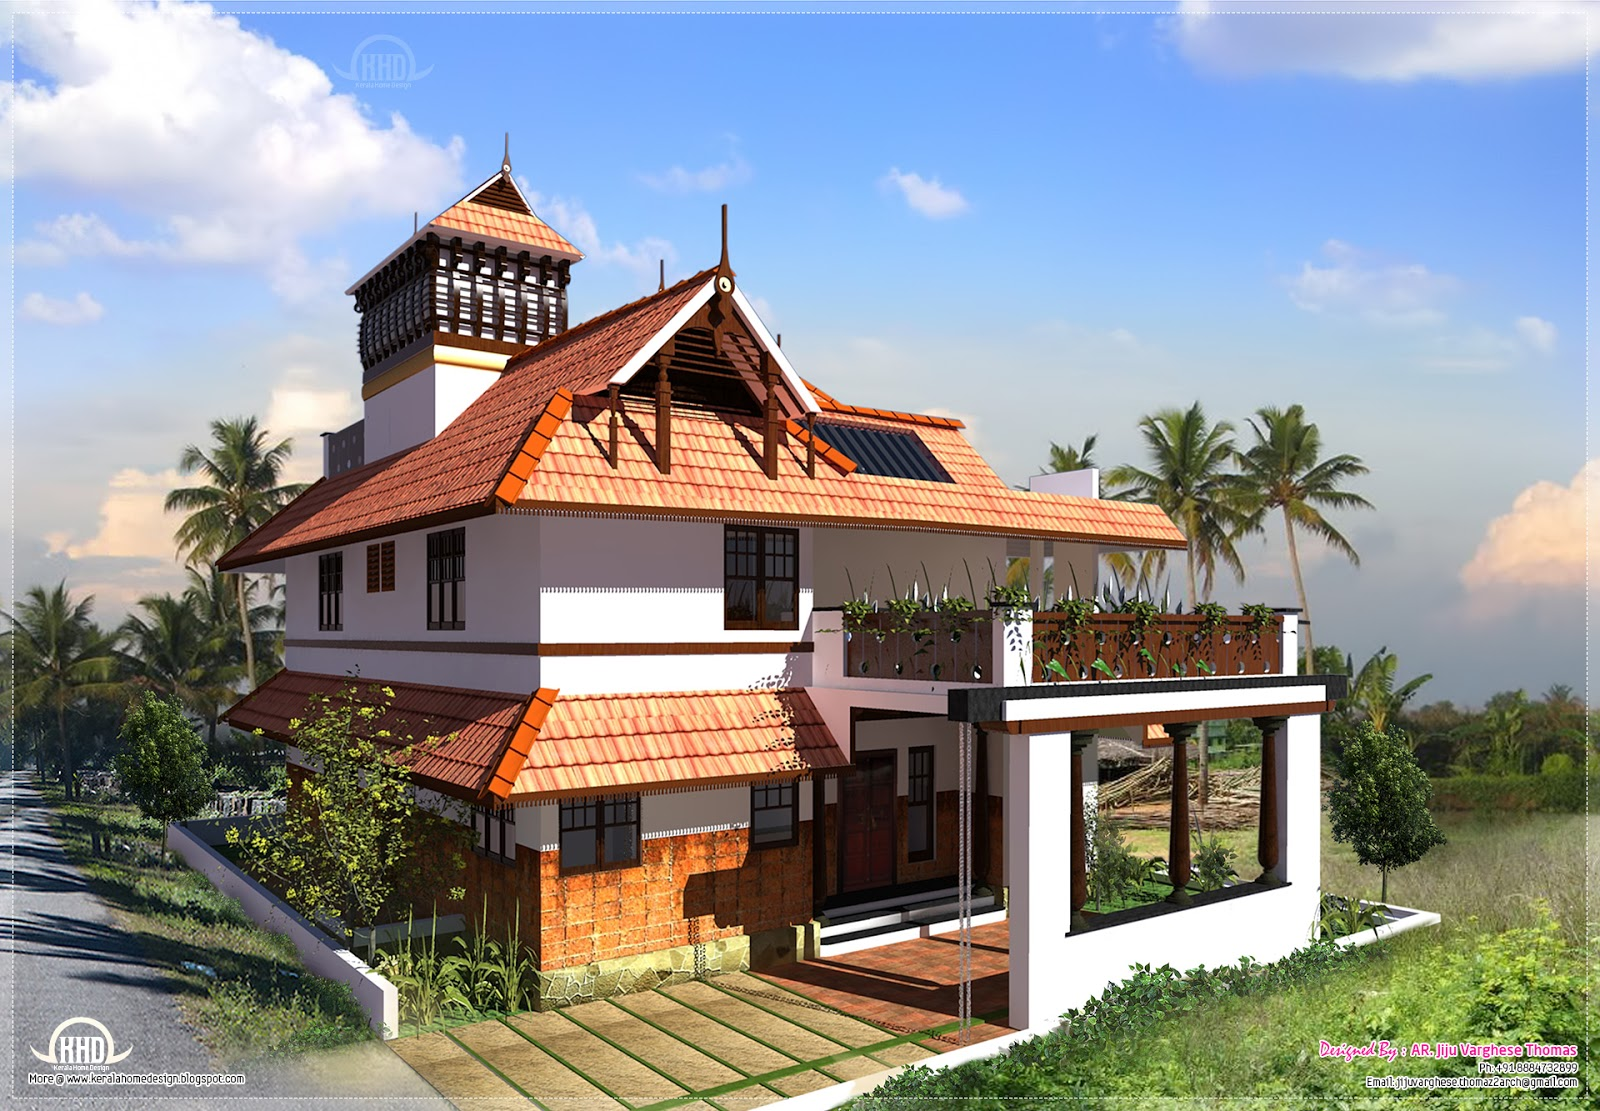 ... Traditional 3 bedroom Kerala home design by Ar. Jiju Varghese Thomas